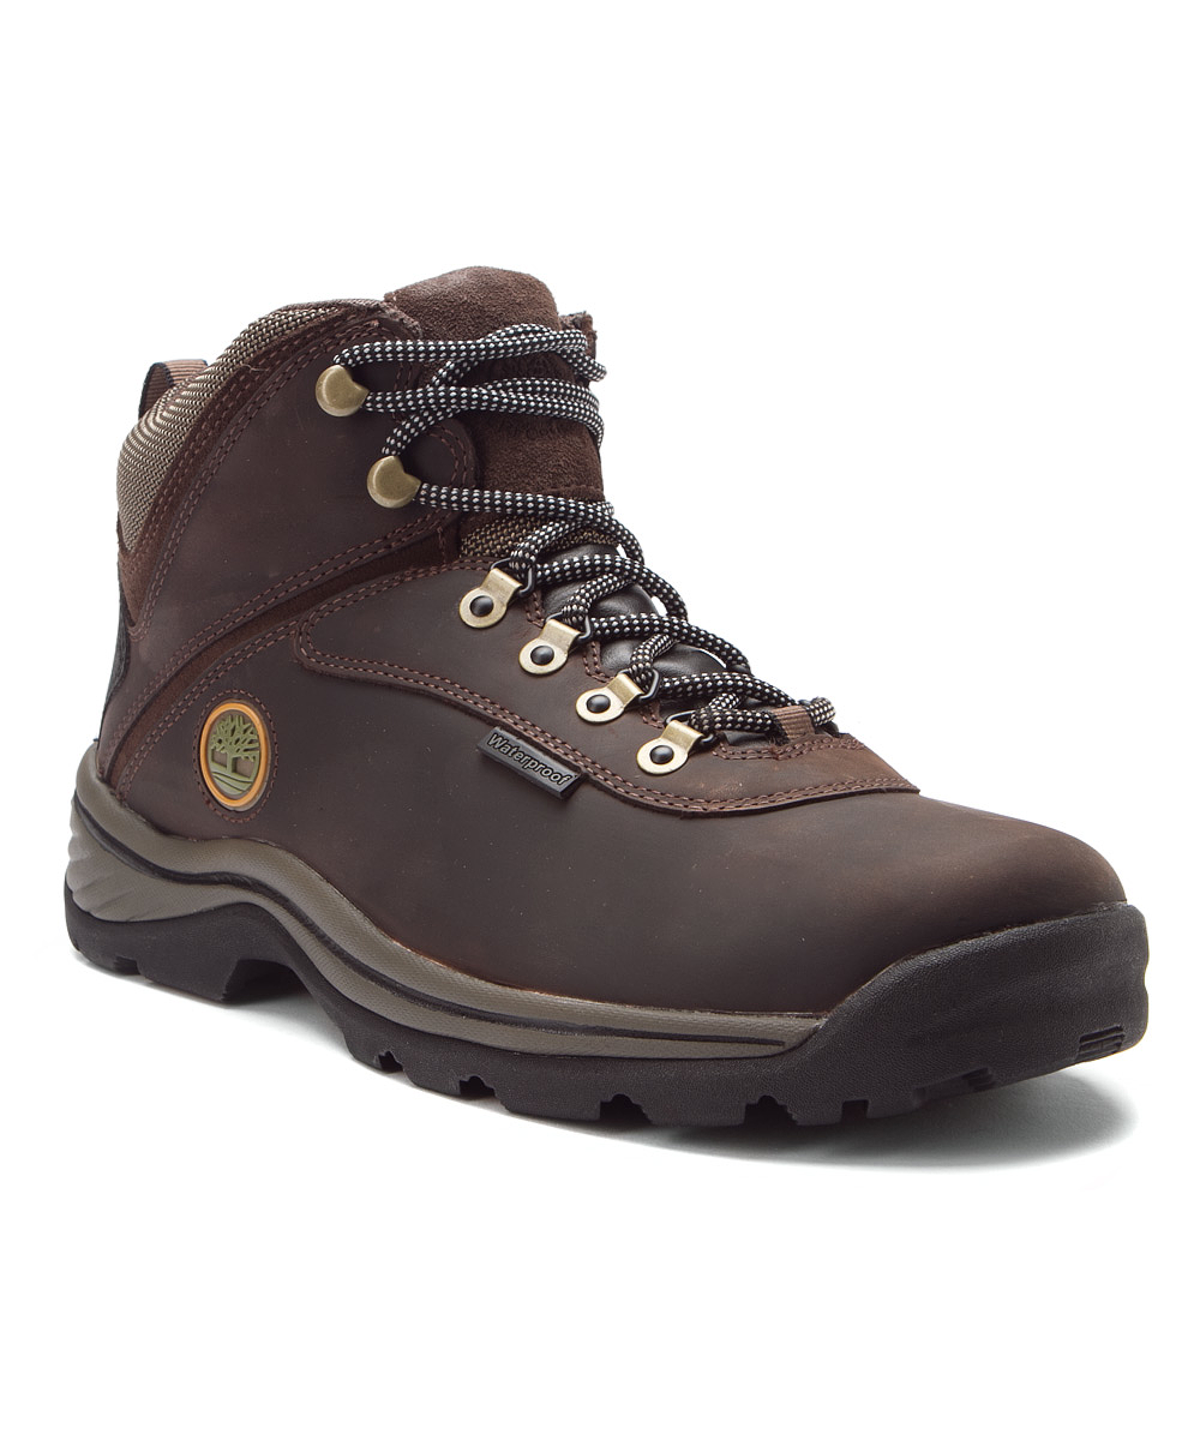 f95efbed68e TIMBERLAND Men'S White Ledge Waterproof Mid Hiking Shoes ...